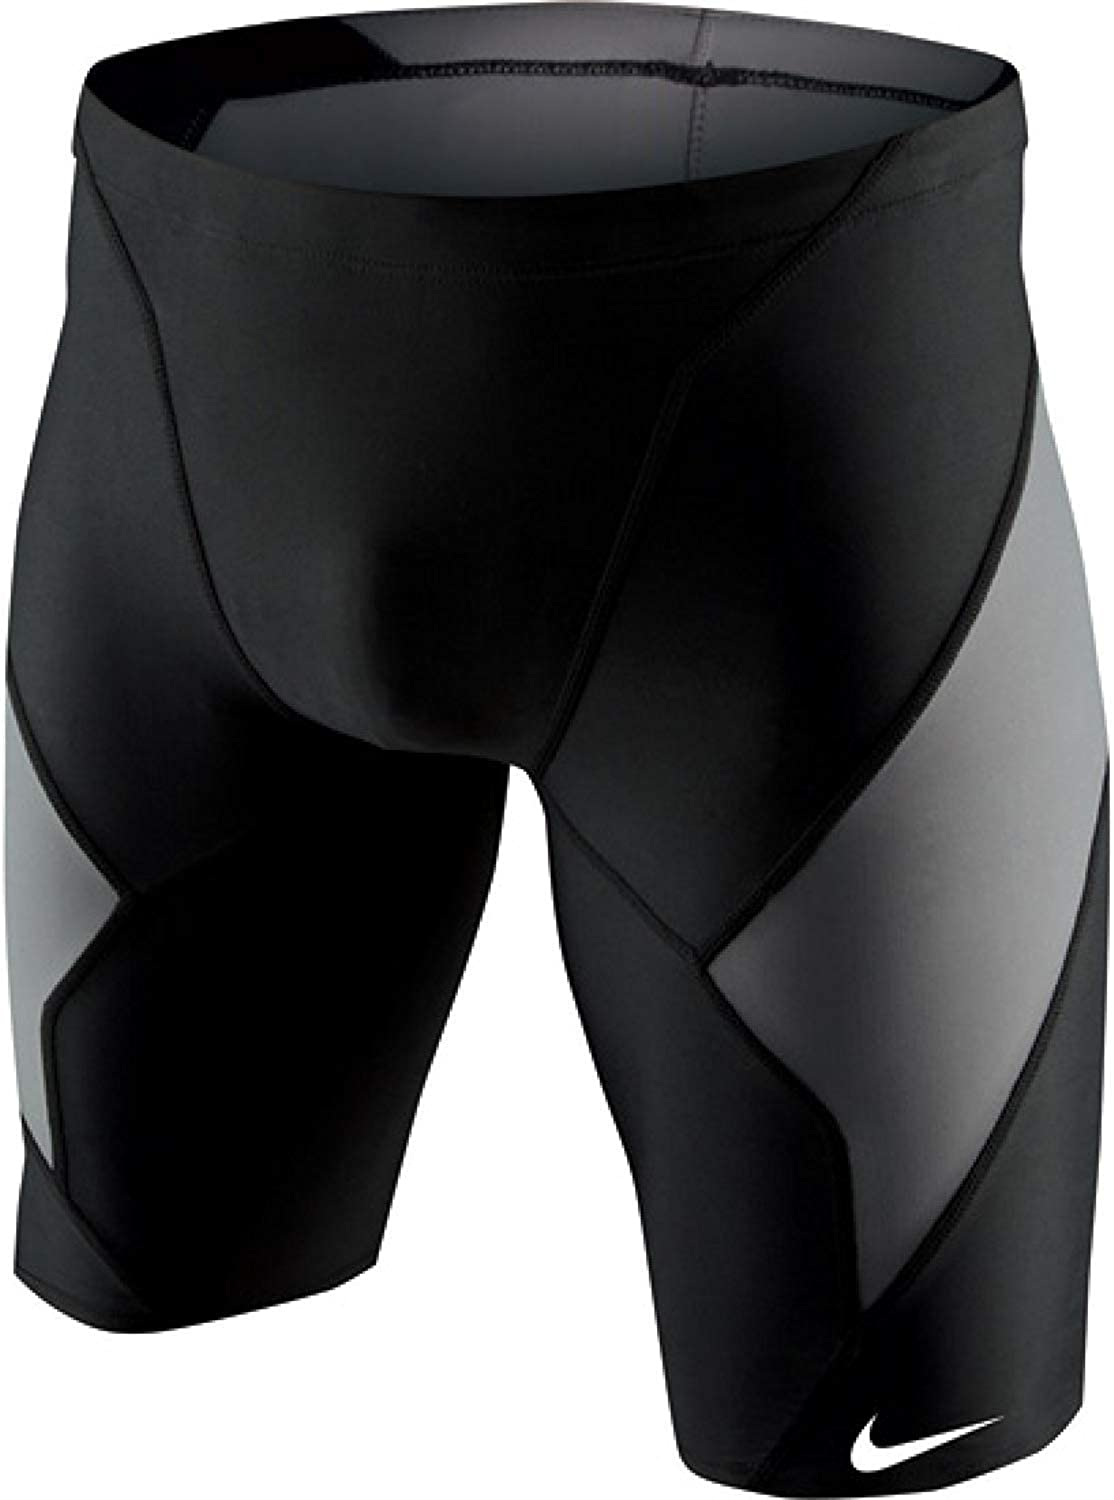 Nike Victory Color Block Swim Jammer : Clothing